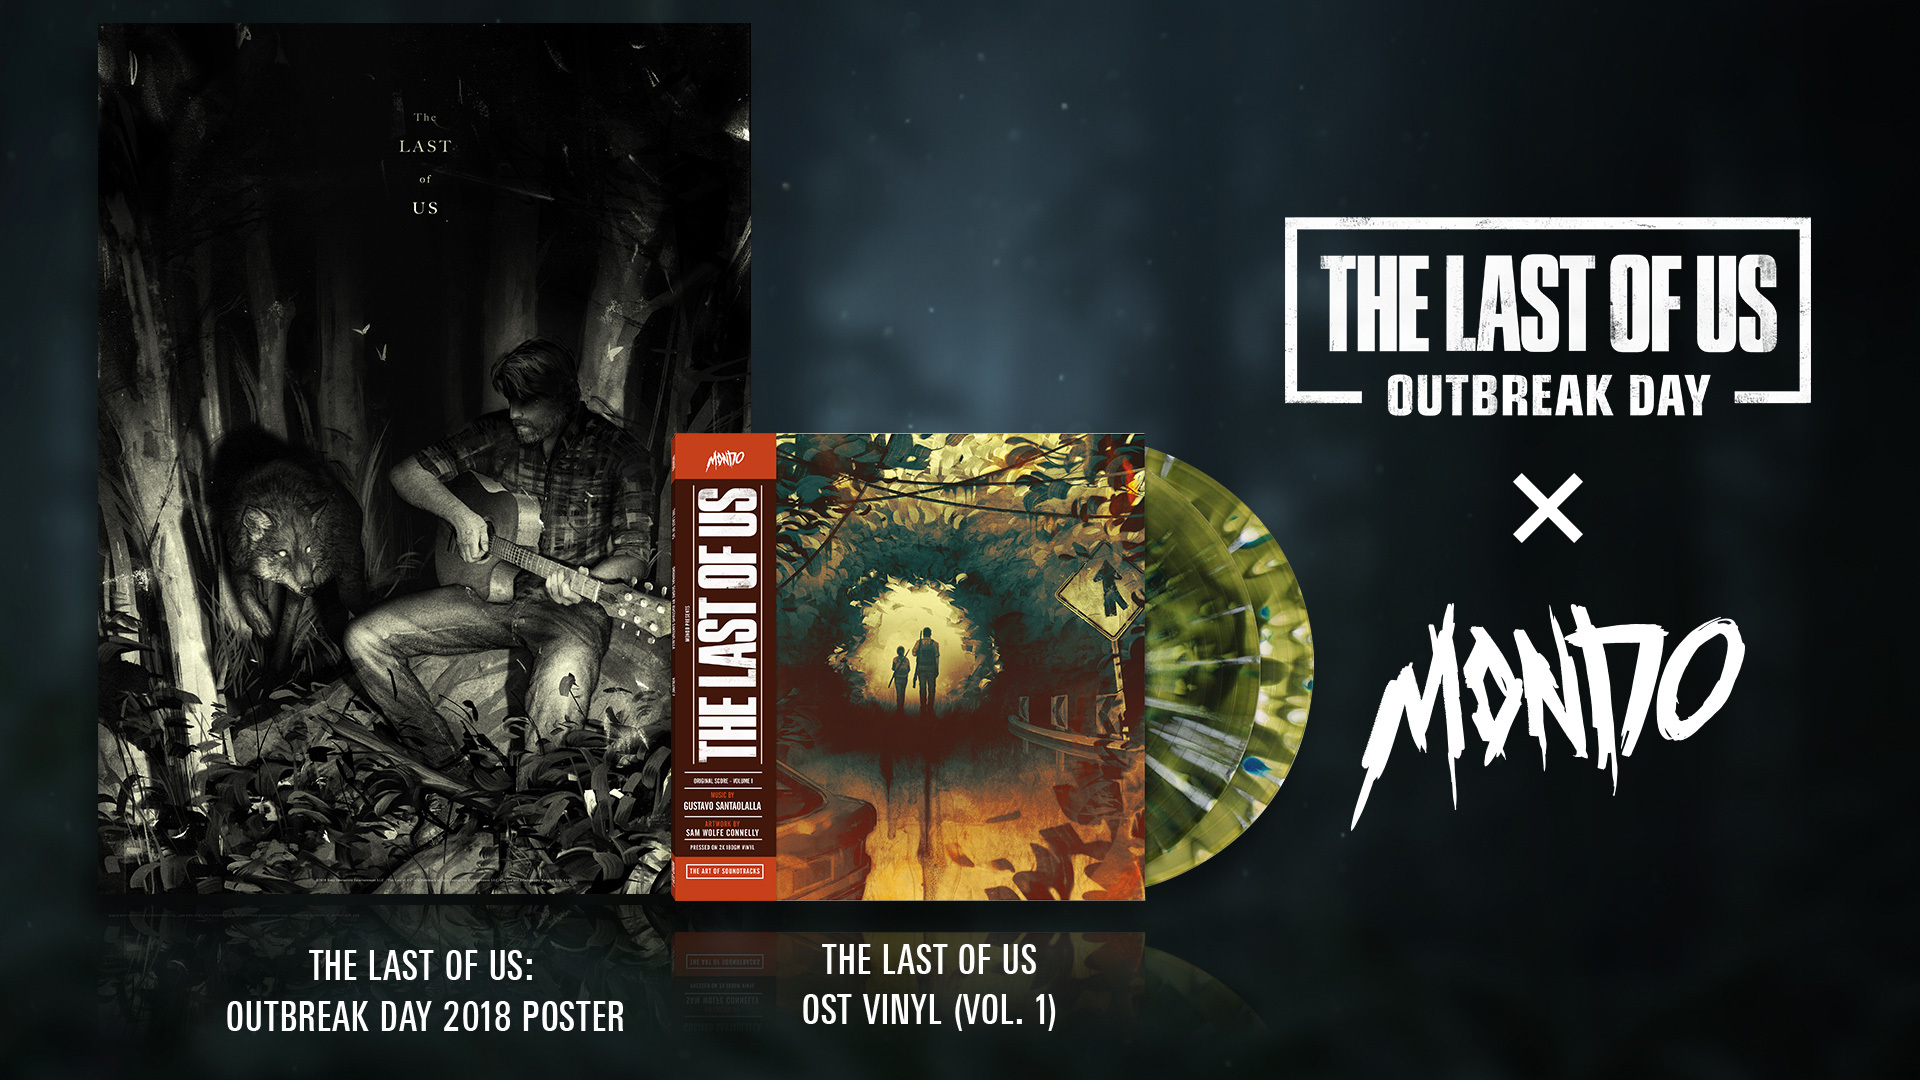 We're Excited To Continue Our Collaboration With Mondo - Last Of Us Part 2 Collector's Edition , HD Wallpaper & Backgrounds